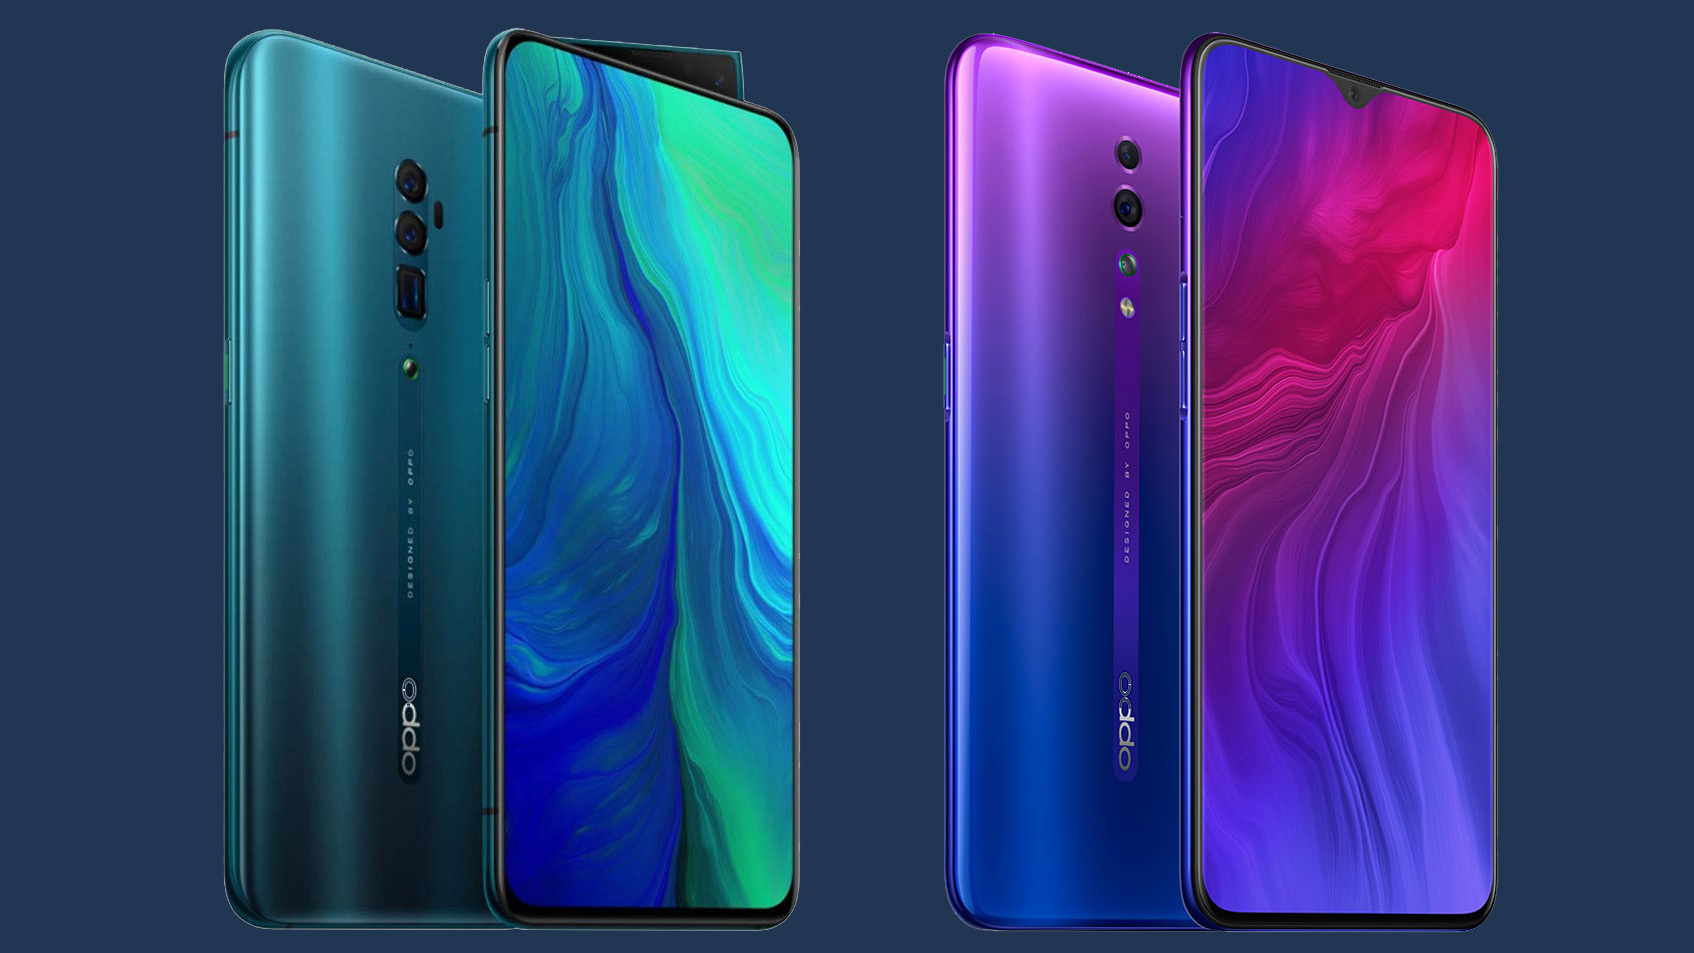 Best Oppo phones of 2020: pick up the best Oppo handset for you ...